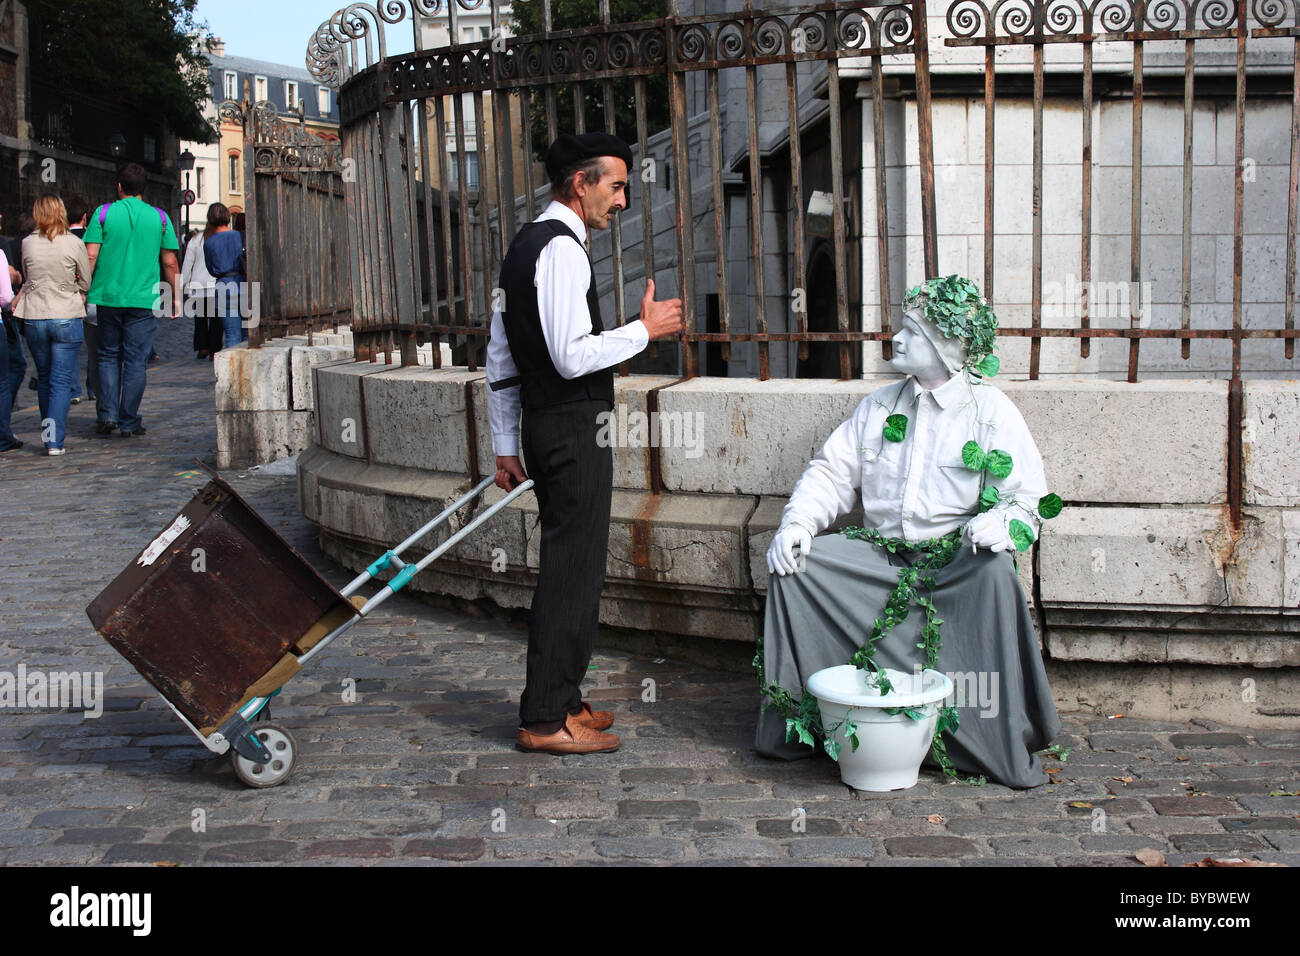 Two street entertainers talking. Montmartre, Paris. - Stock Image